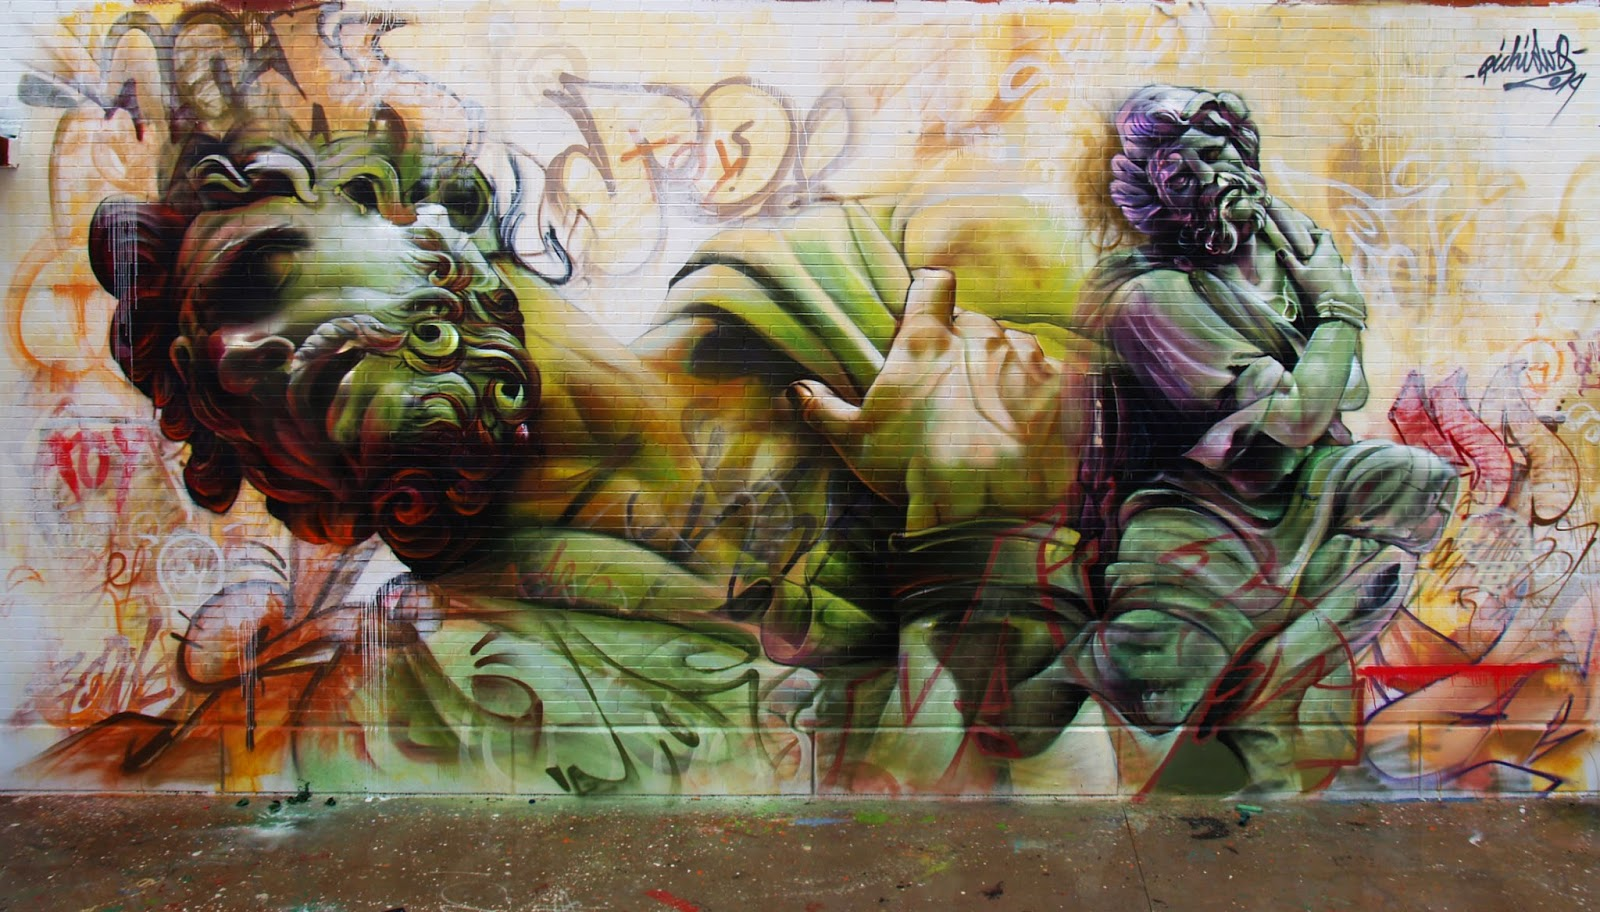 Pichi and Avo just finished working on this new piece for the Hip Hop Street Vicar Festival 2014 in Almeria, a city in Andalusia, Spain. 1